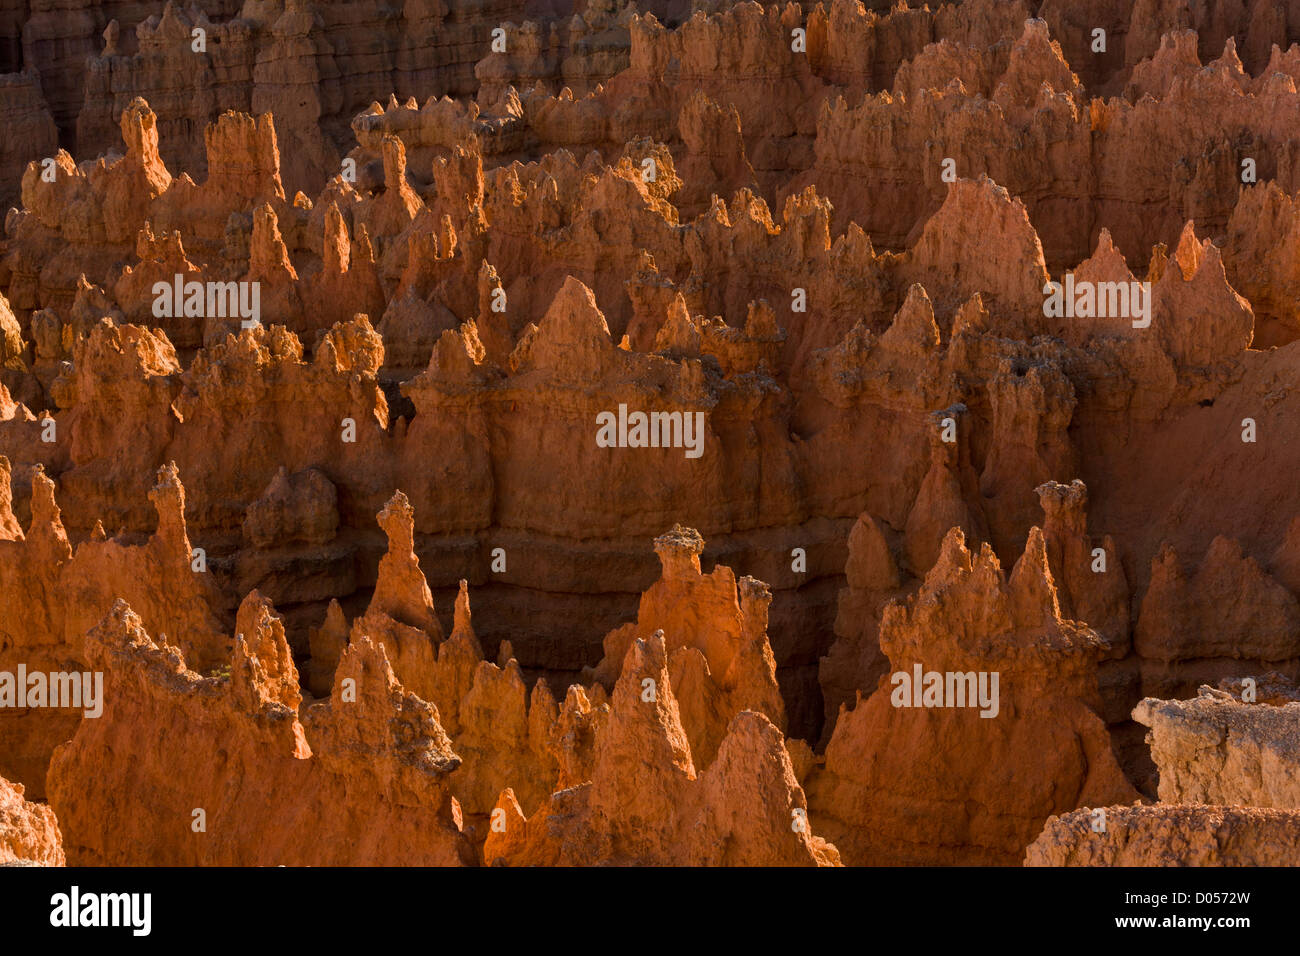 Hoodoos or Rock pillars from erosion in the limestones and other rocks of the Claron formation, Bryce Canyon National - Stock Image